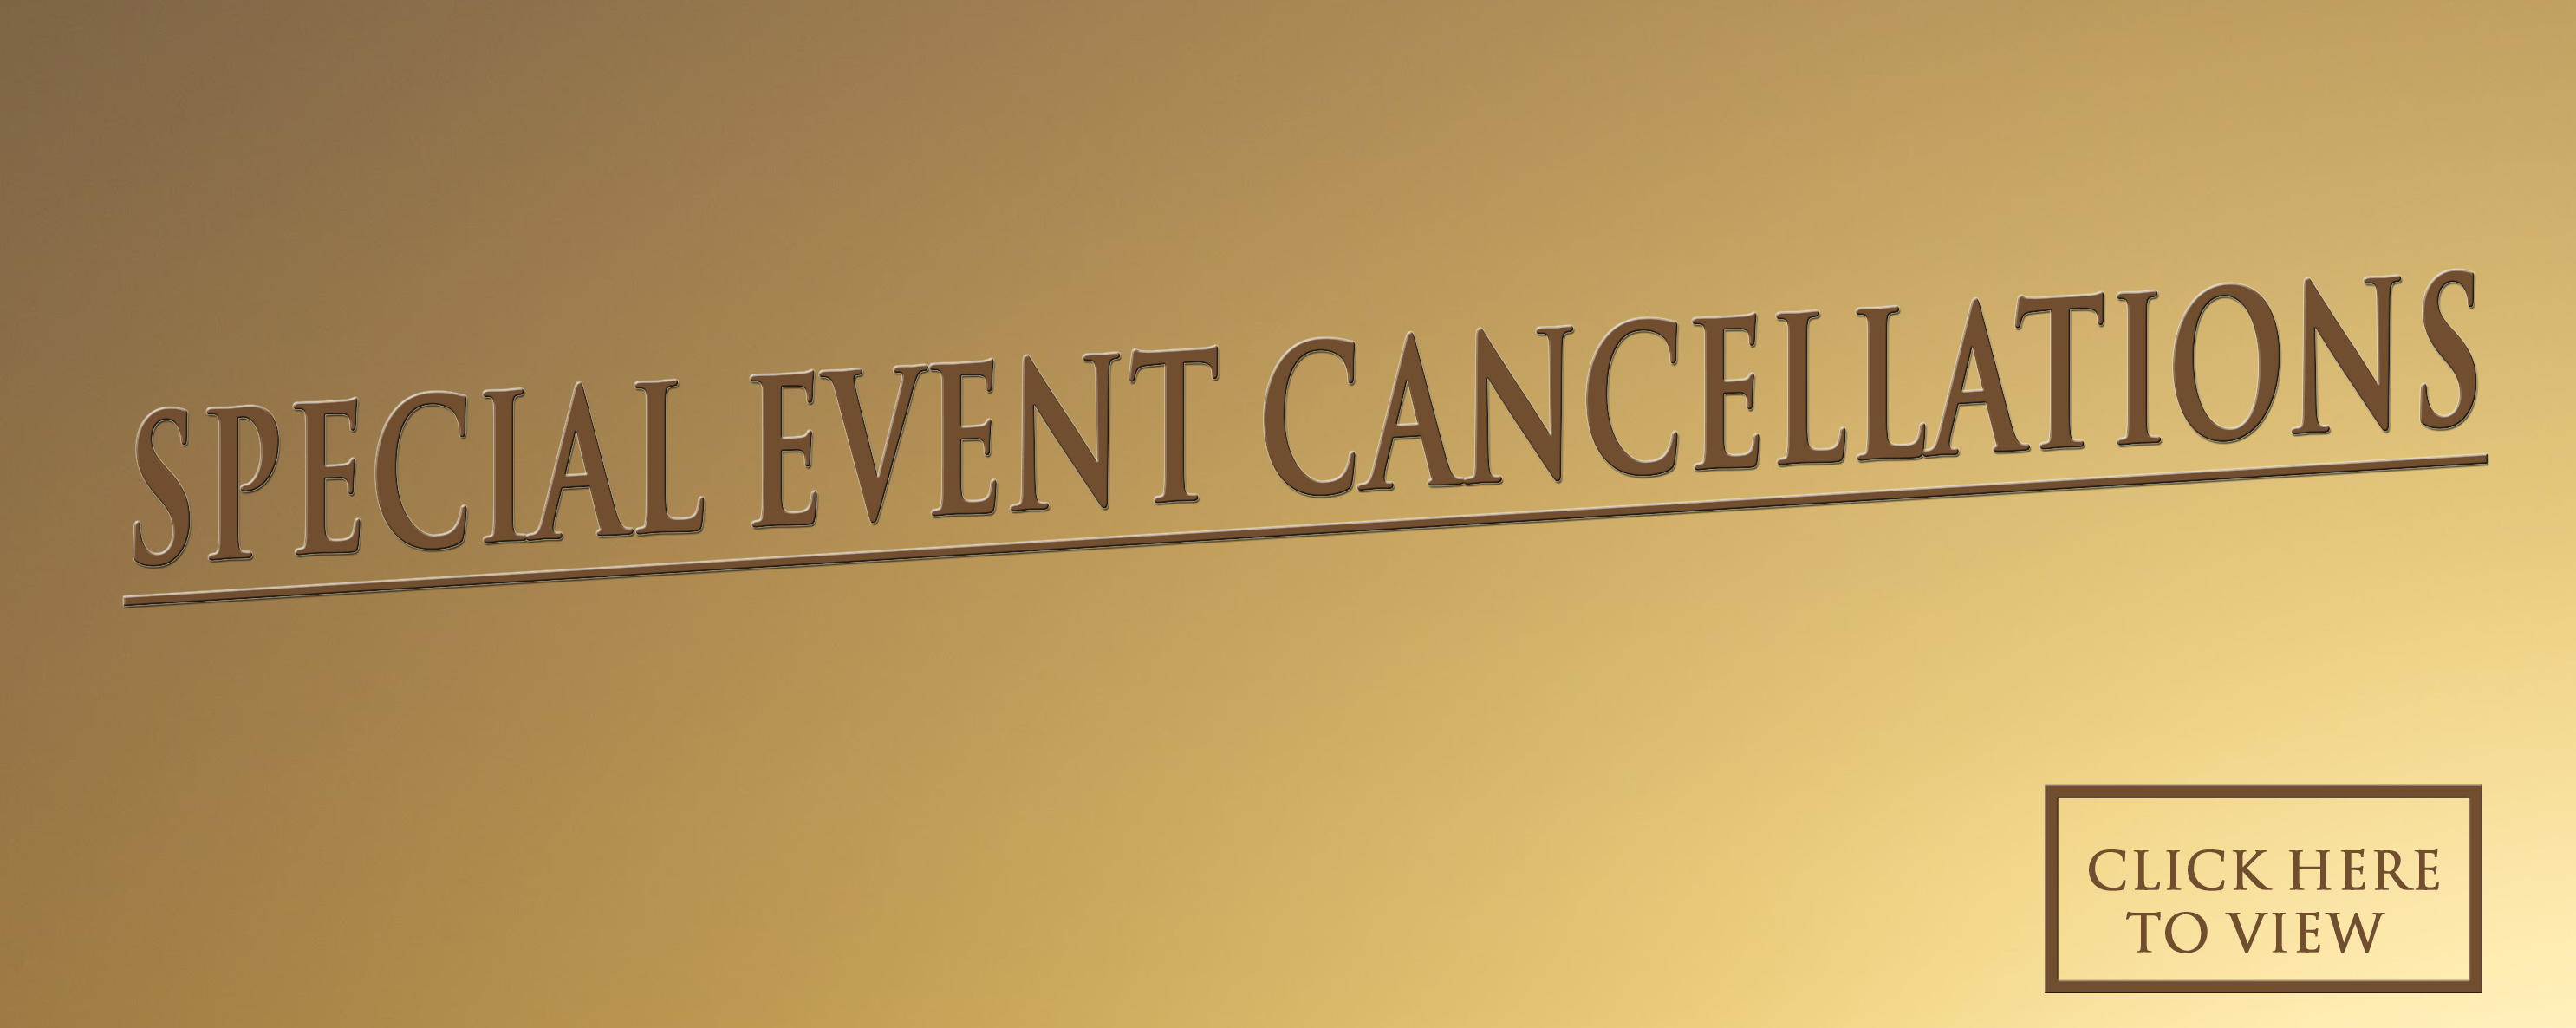 Special Event Cancellations-rotator